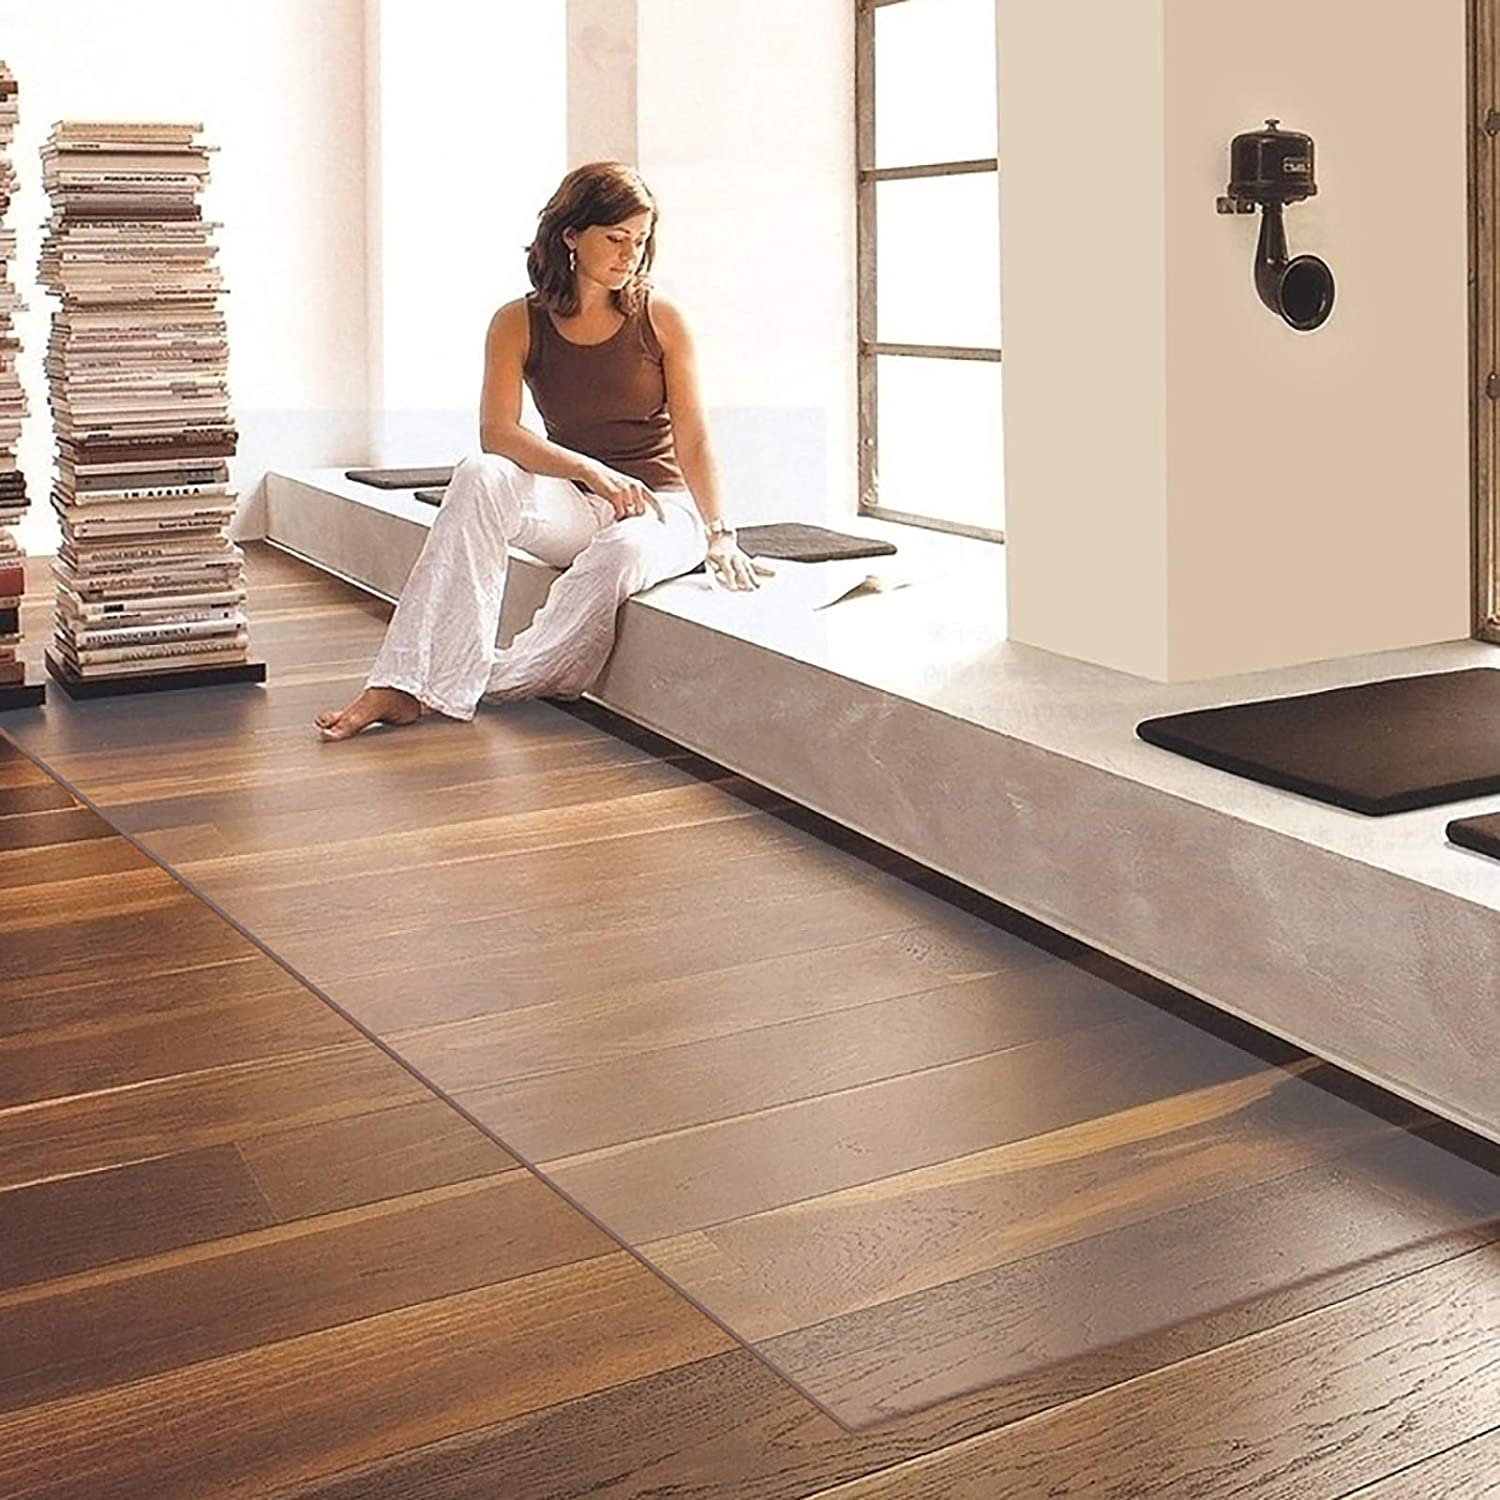 Area Rugs Clear Plastic Runner Hardwood for Quality inspection Floors Carpet Max 80% OFF